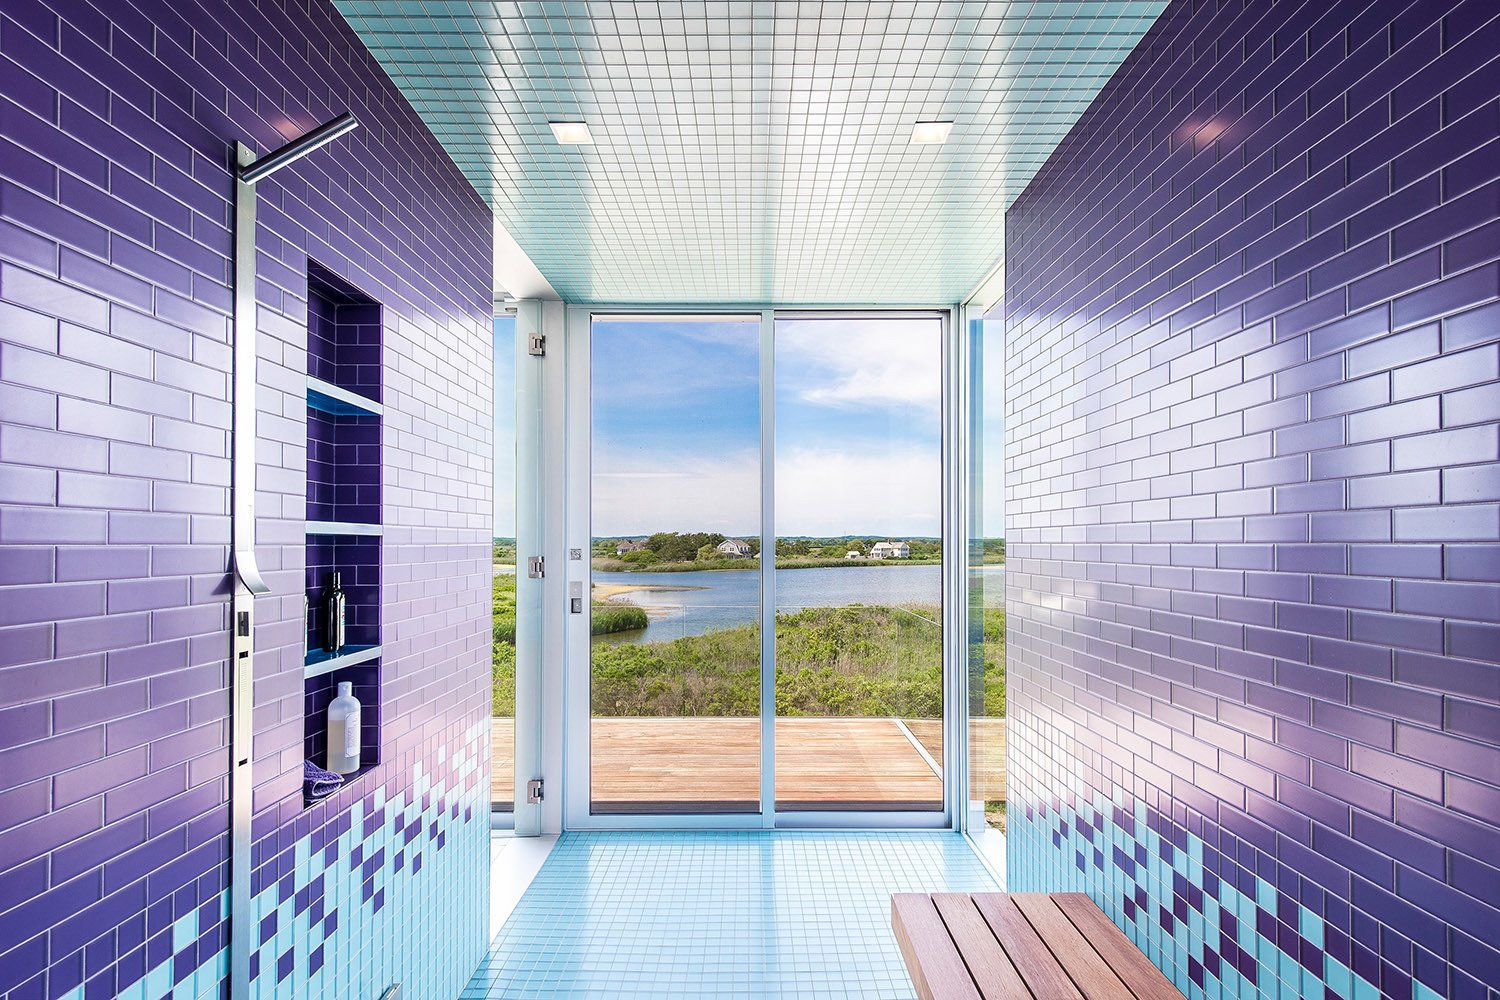 Bath Room, Ceramic Tile Wall, Ceramic Tile Floor, Ceiling Lighting, and Open Shower Consider this lively bathroom that sits within a recently completed waterfront home in Bridgehampton, New York. Situated on two-and-a-half acres of land with 360-degree views of the nearby bay and ocean, it's covered with brightly colored floor-to-ceiling tiles that reflect the shades of the neighboring water. One step through the sliding glass doors and you'll find yourself on an open terrace.  Best Photos from One of These Ultra-Modern Bathrooms Could Be the Escape of Your Dreams